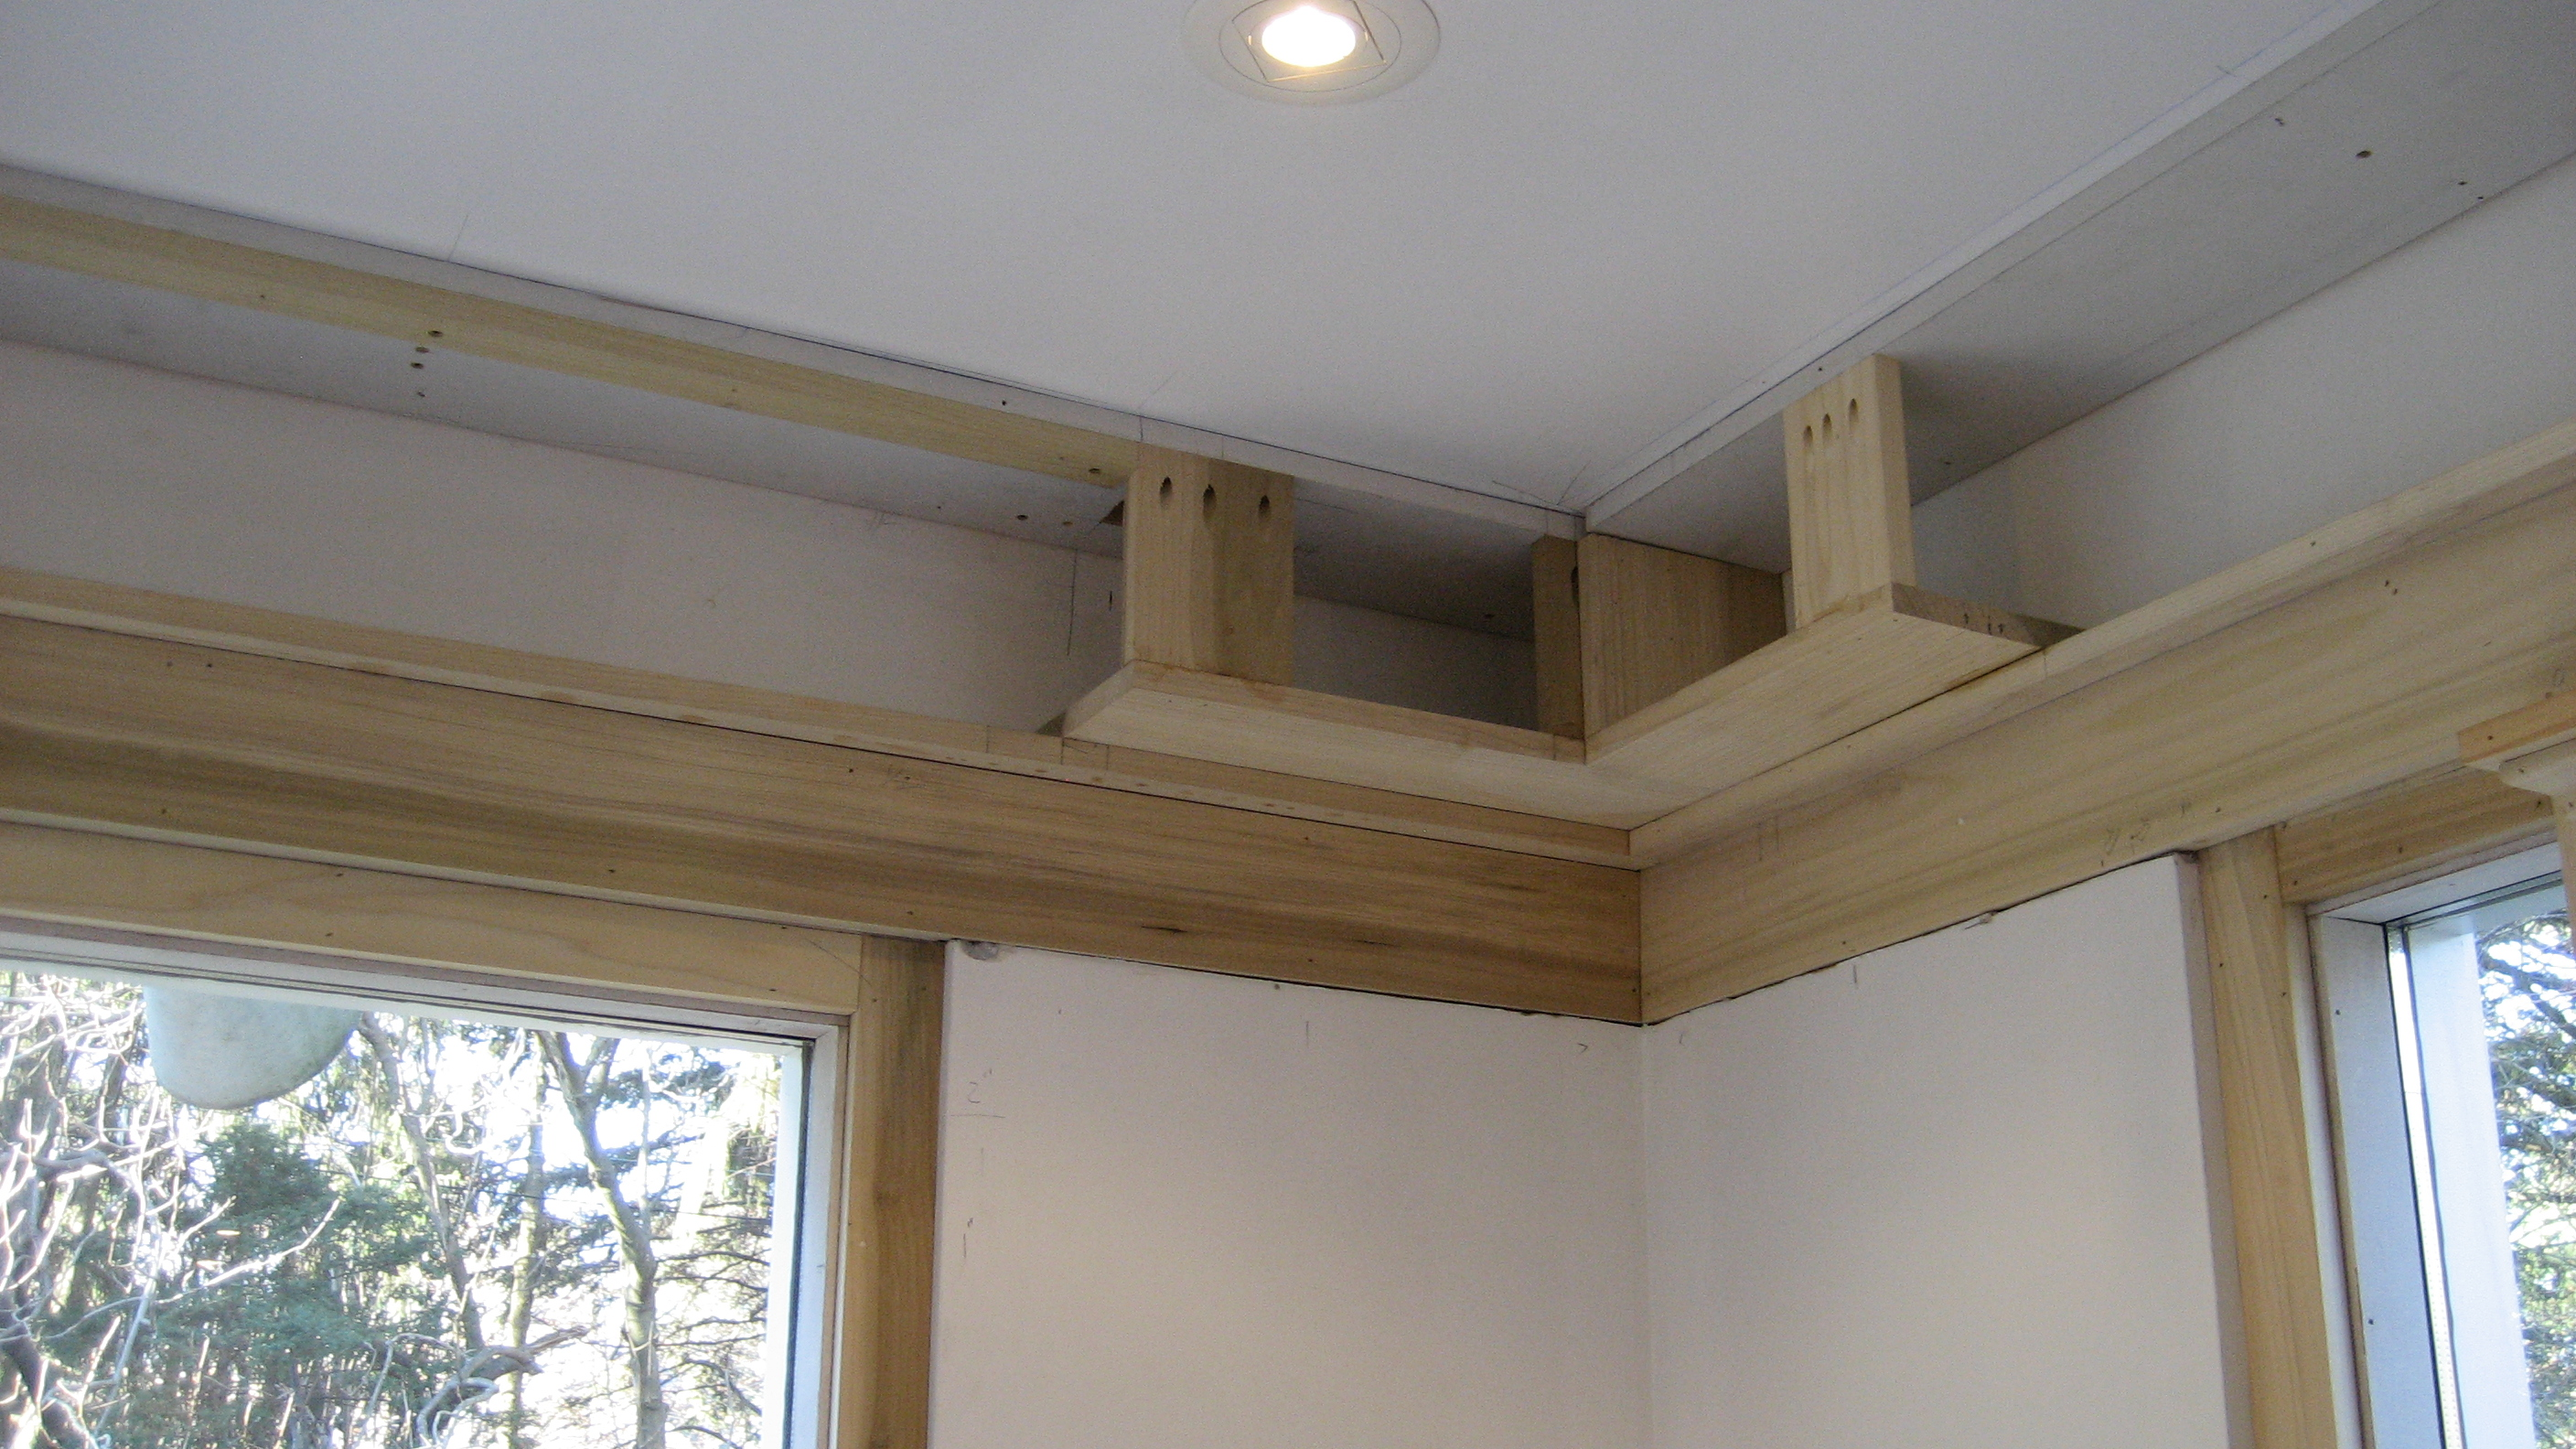 Custom Concealment For Motorized Shades